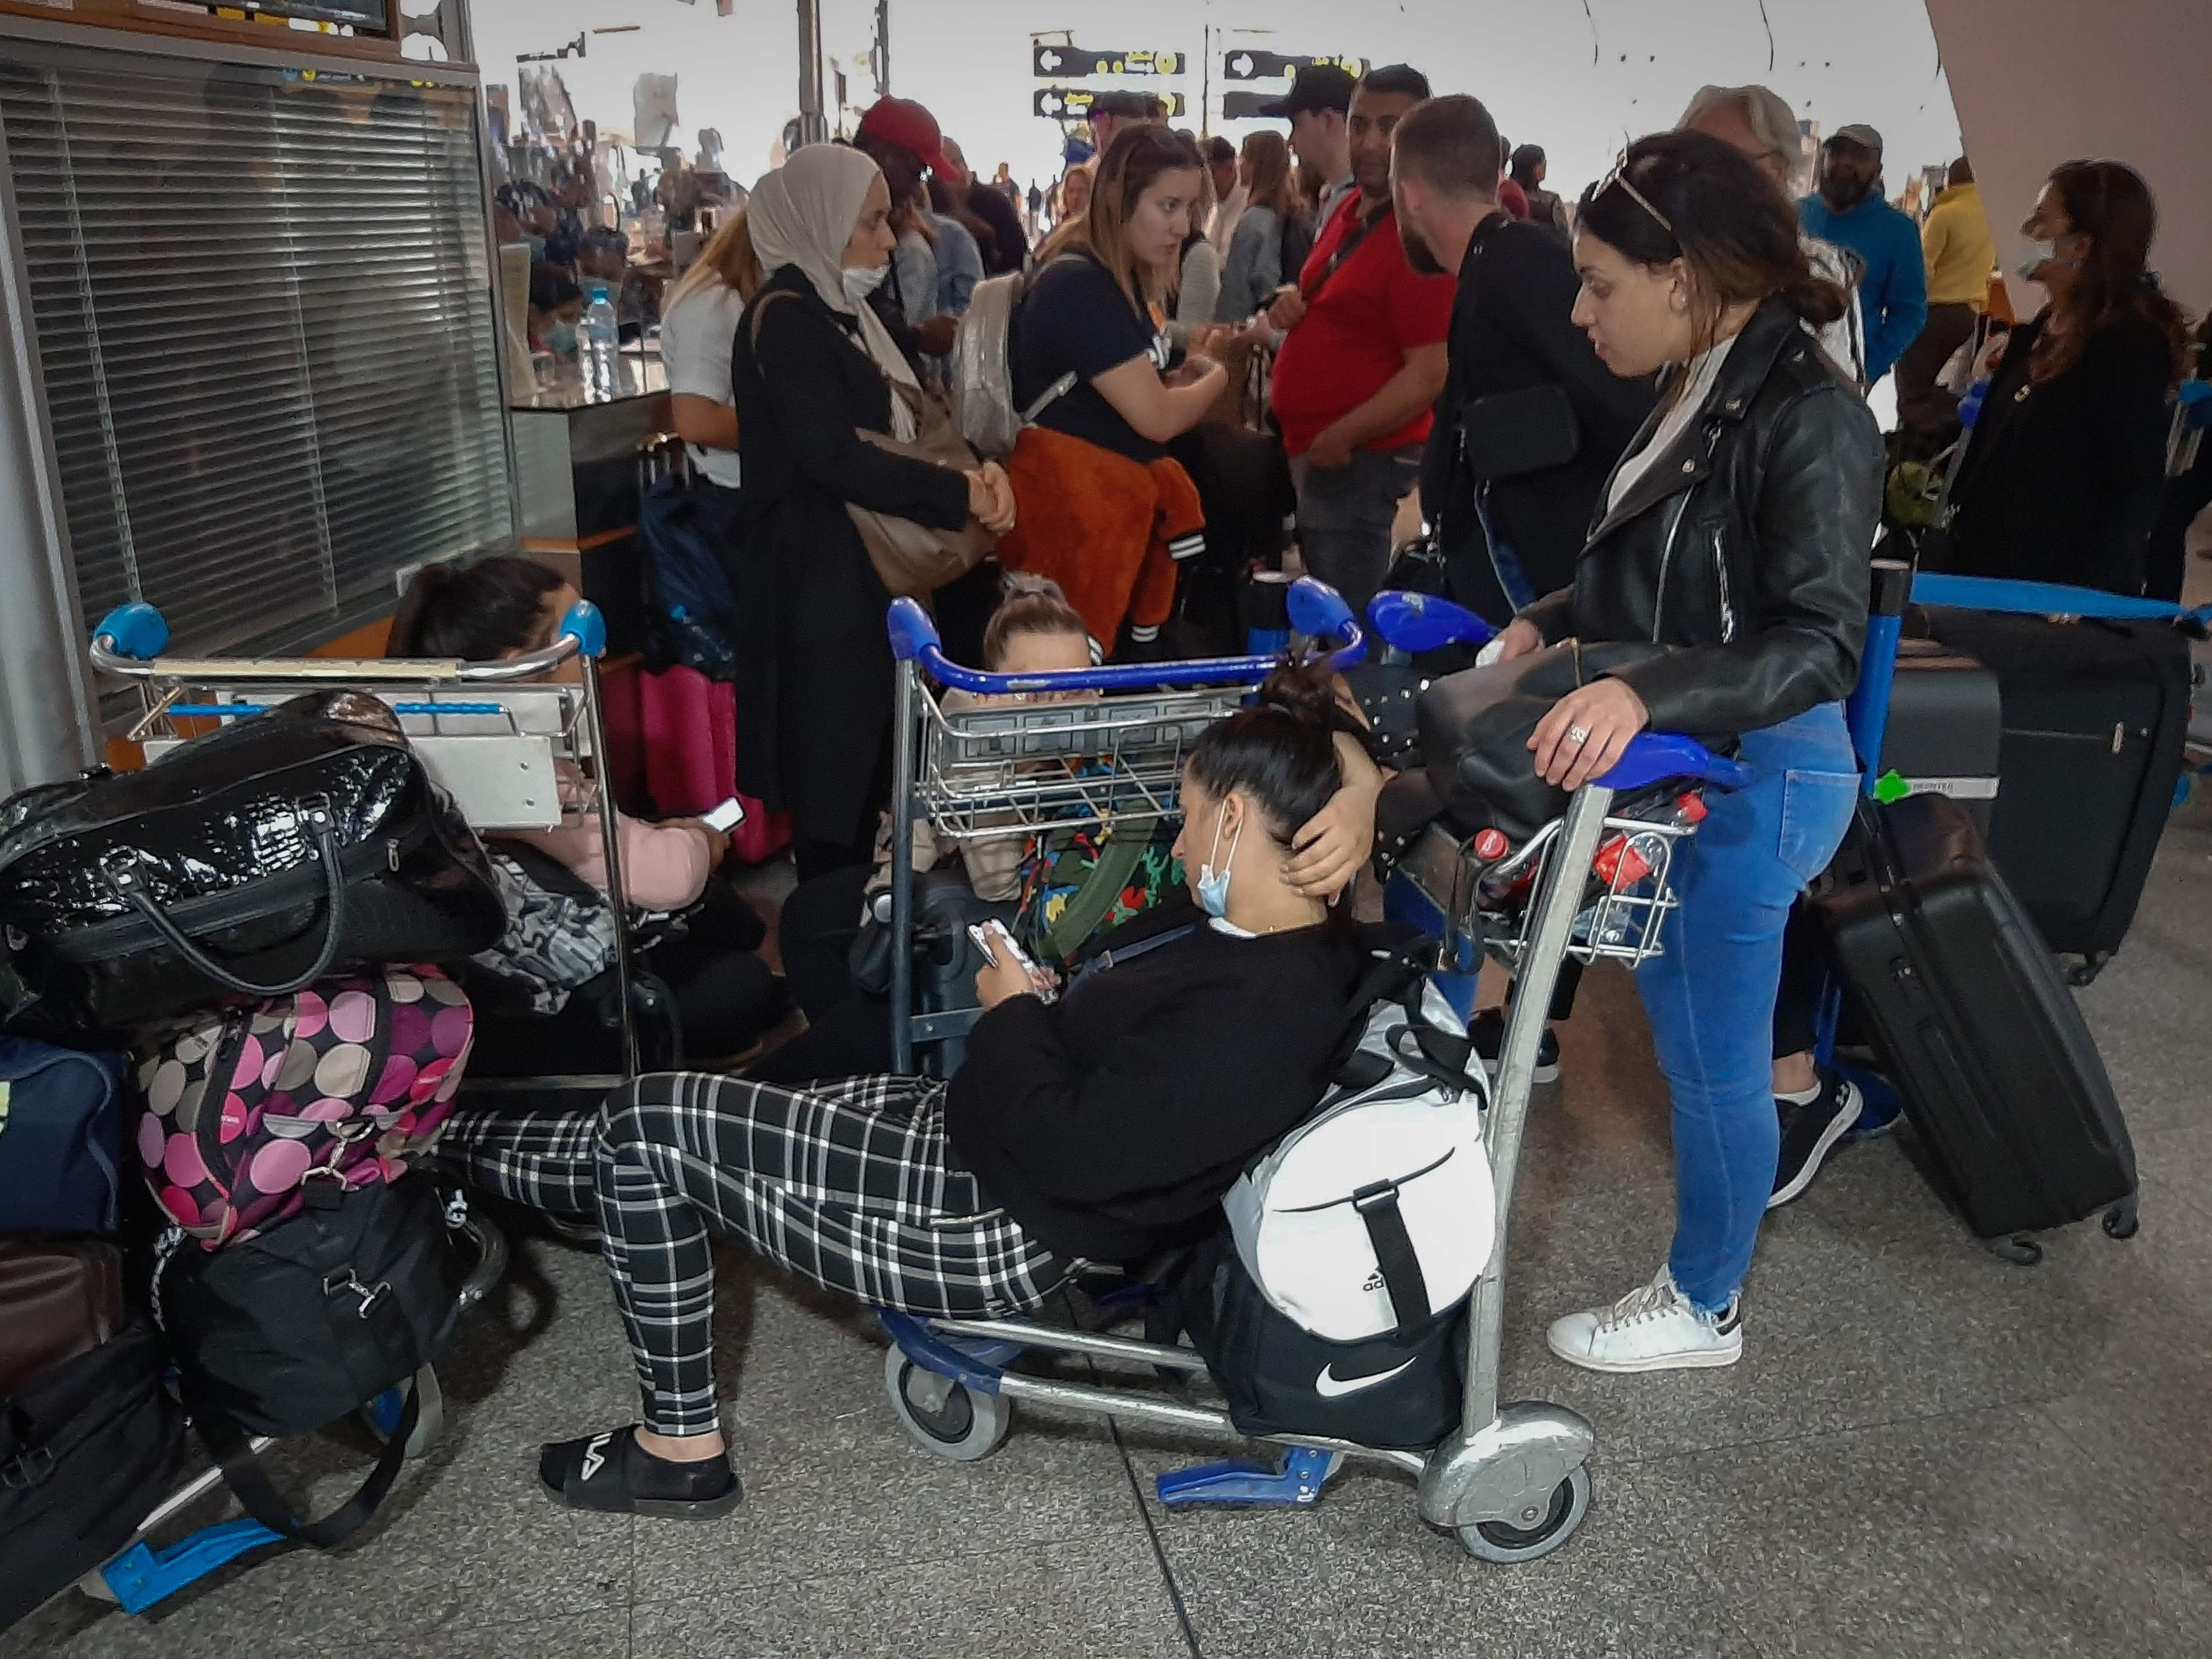 Thousands of Brits have been stranded in airports after border closures